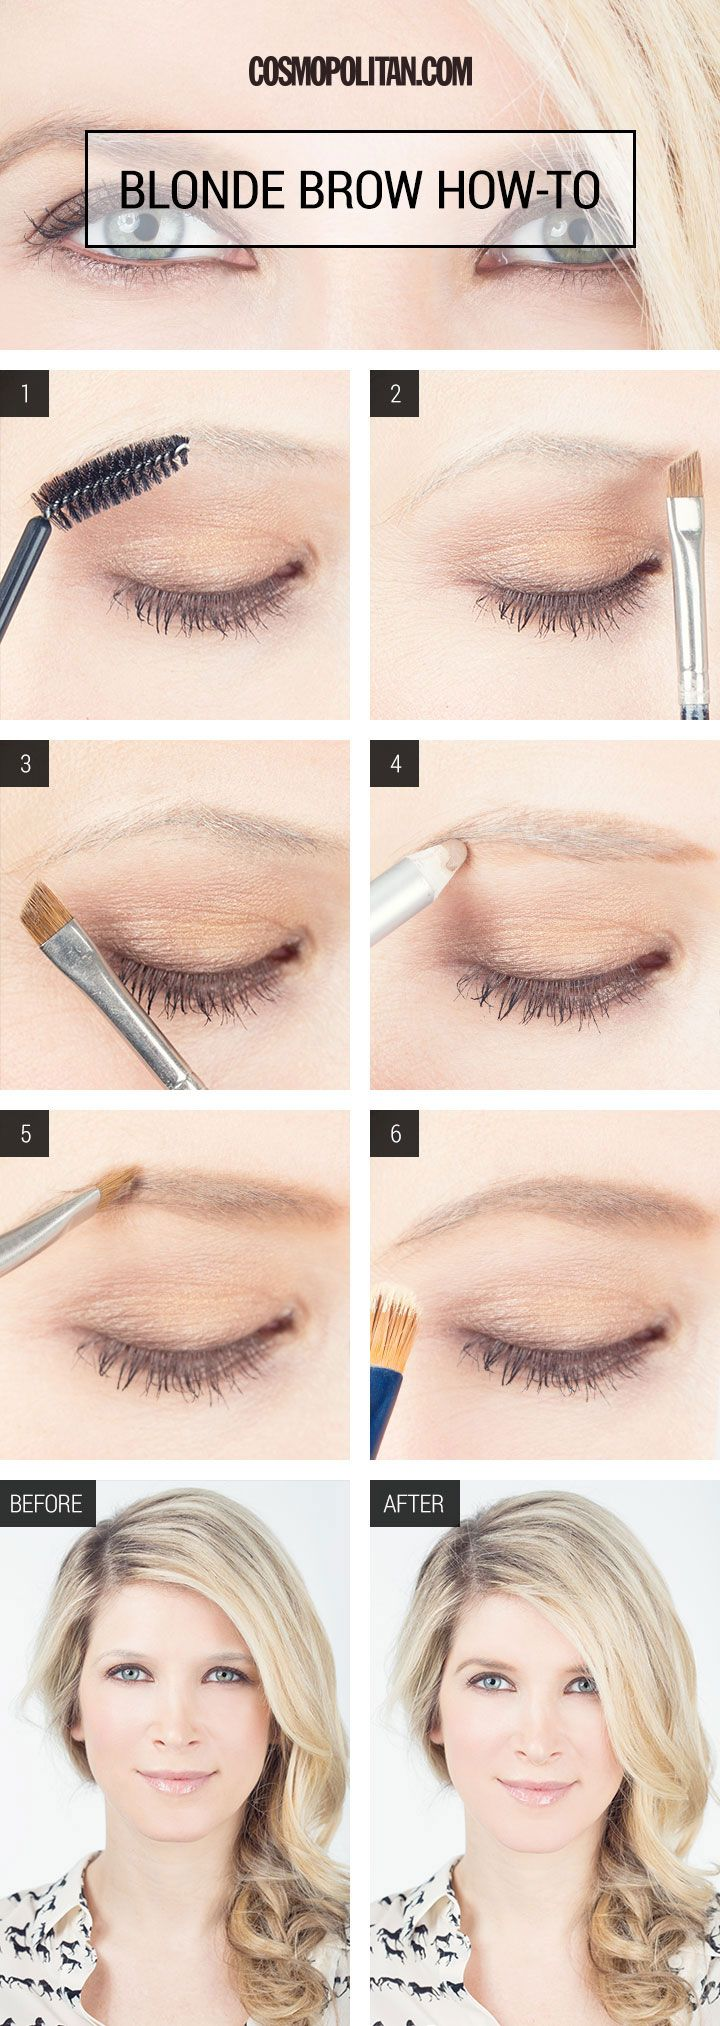 Makeup artist Lauren Cosenza shows you how to fill in barely-there blonde eyebrows for a pretty, natural look.